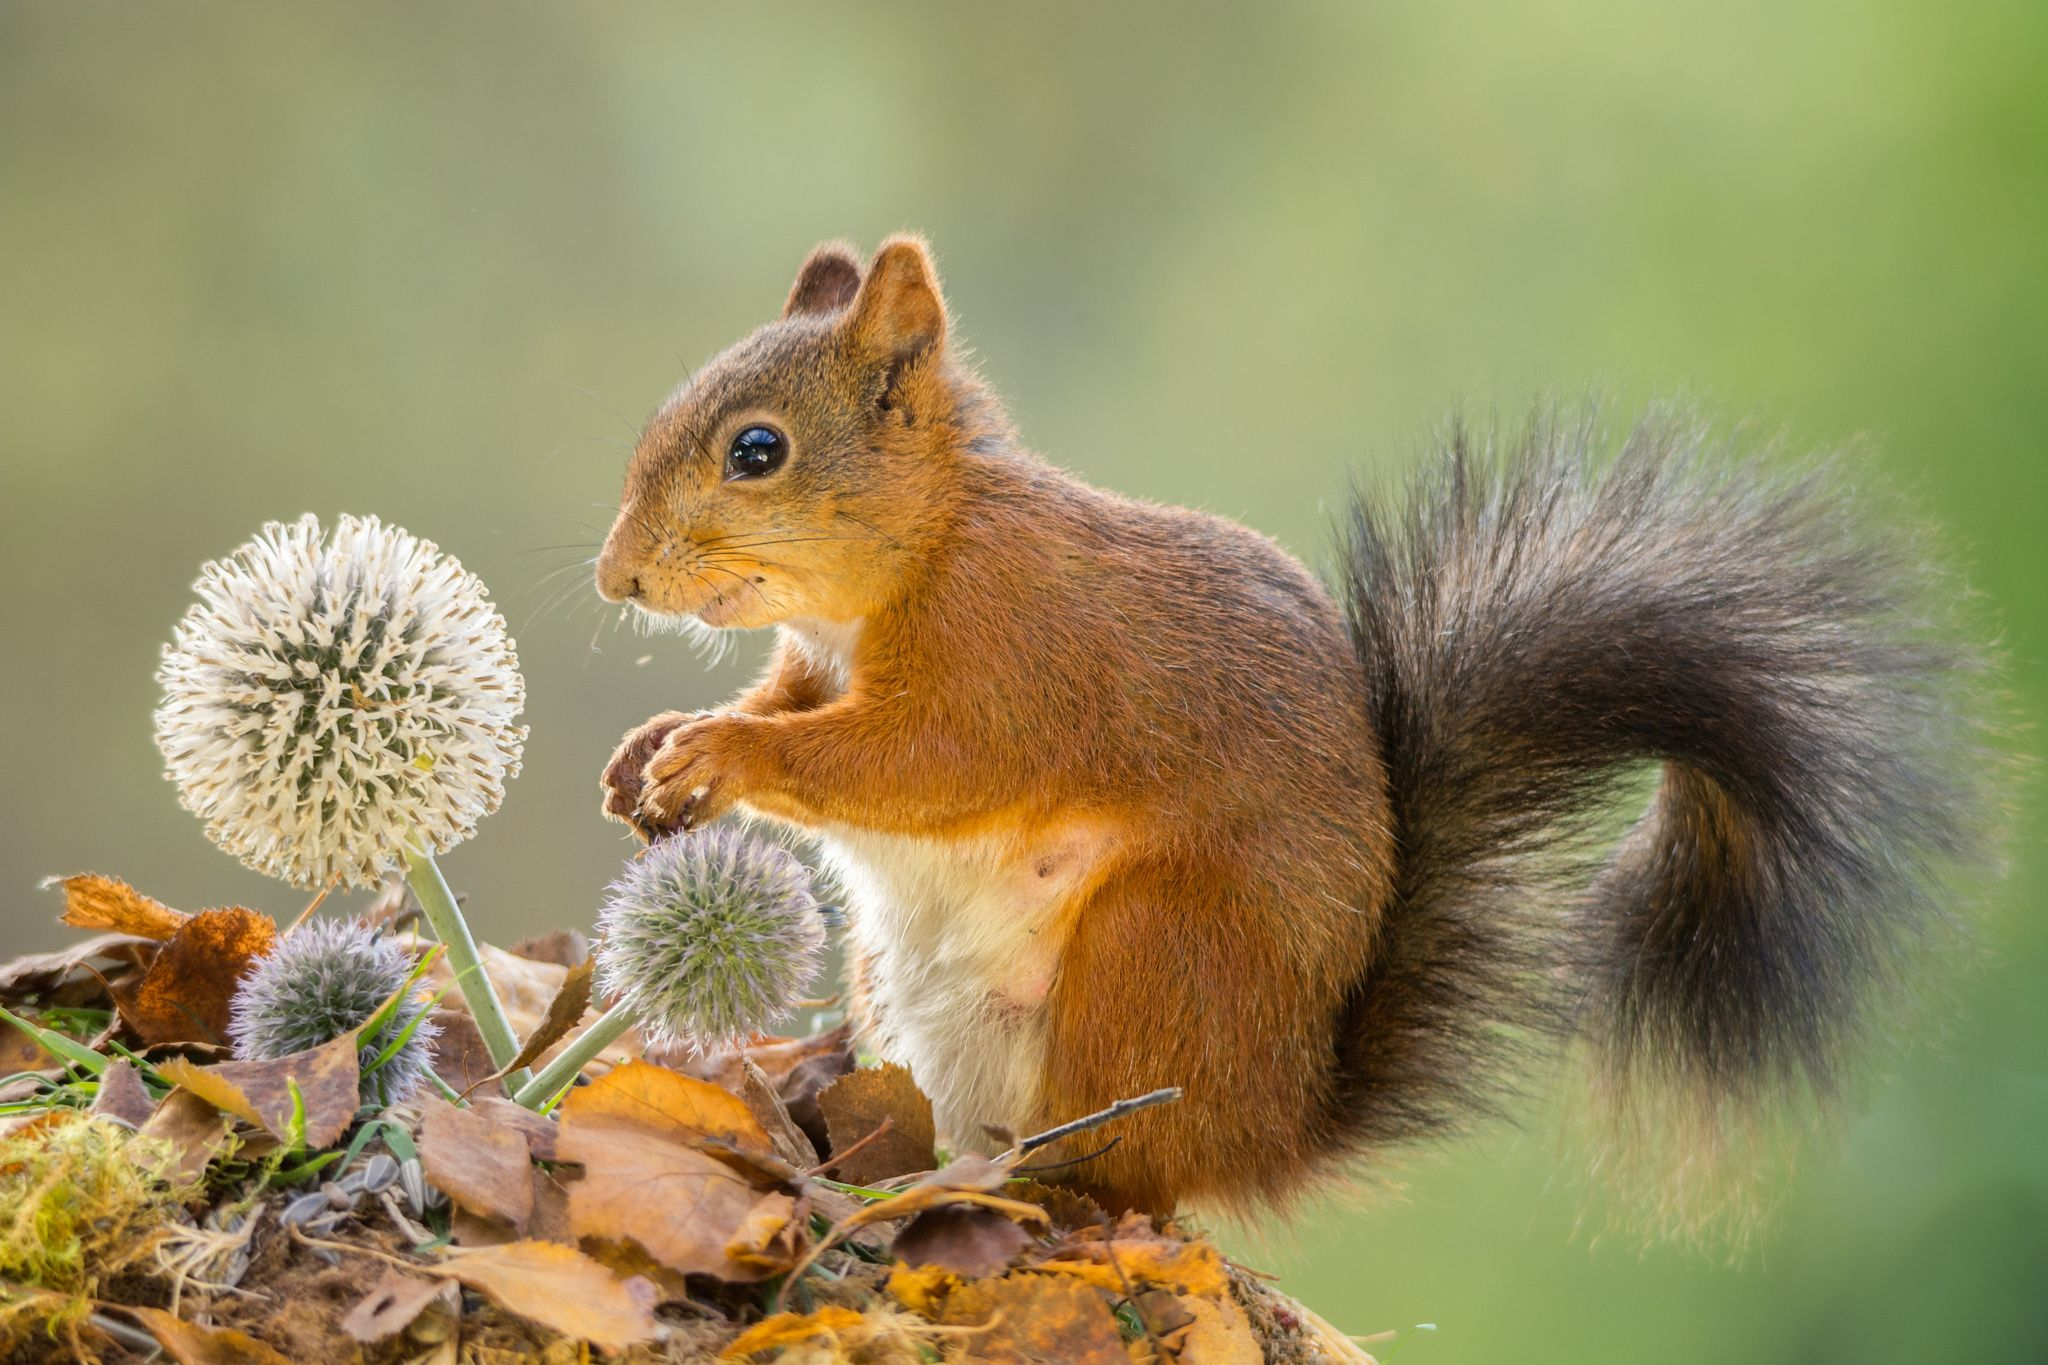 flower wondering by Geert Weggen on 500px